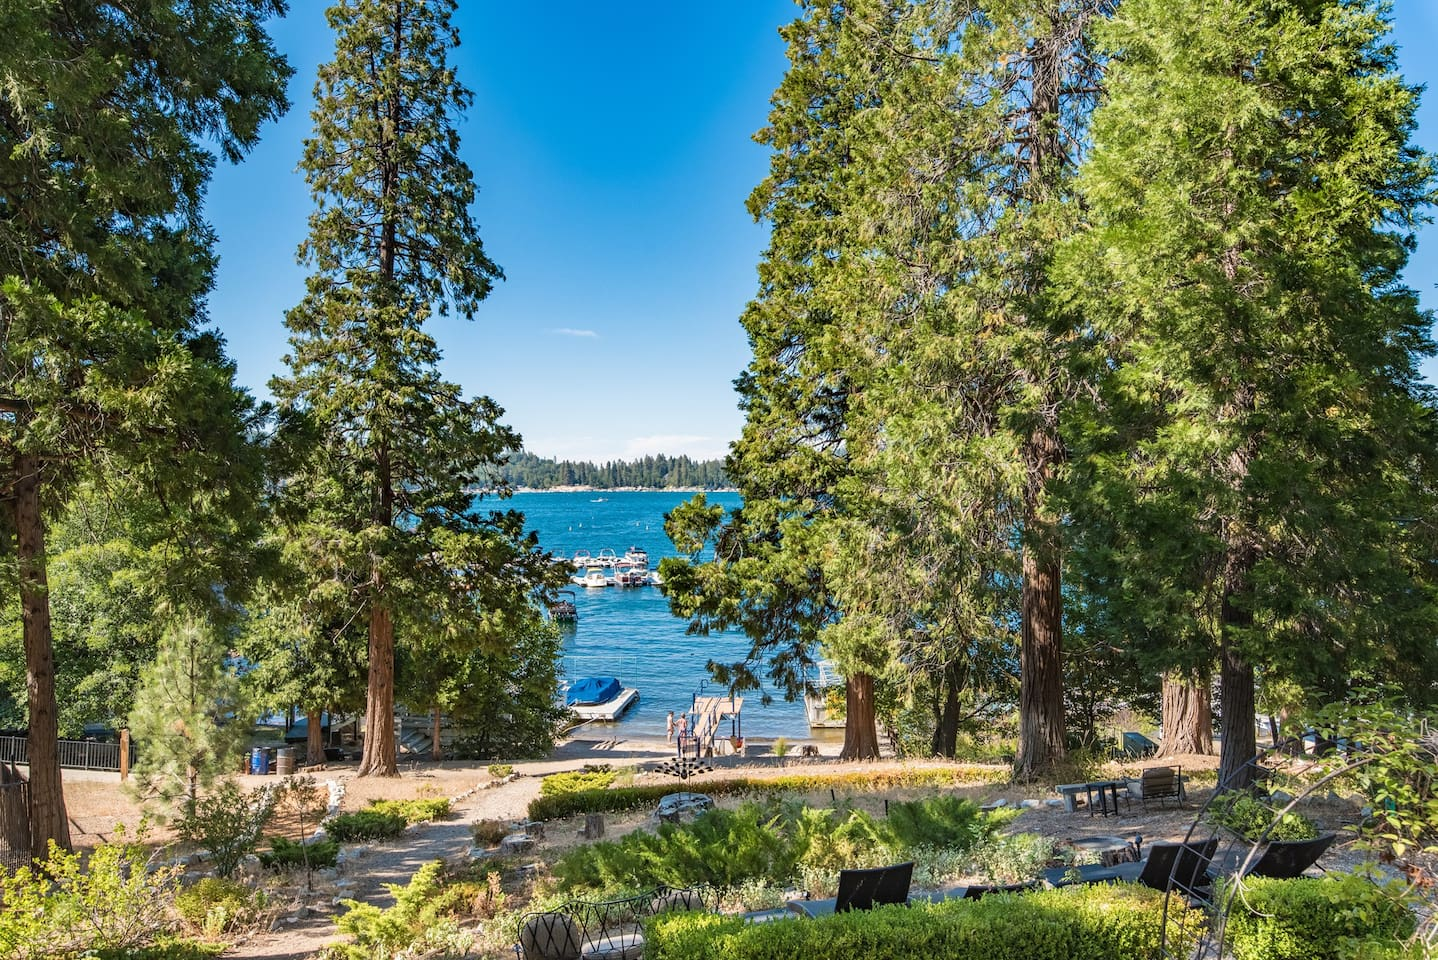 Front yard, private beach, and lake; This is the view from the dinning nook, living room, game room, main deck, second deck, and master bedroom. The trail is right in front of the house and goes to the village (left), and around the lake hiking (right).